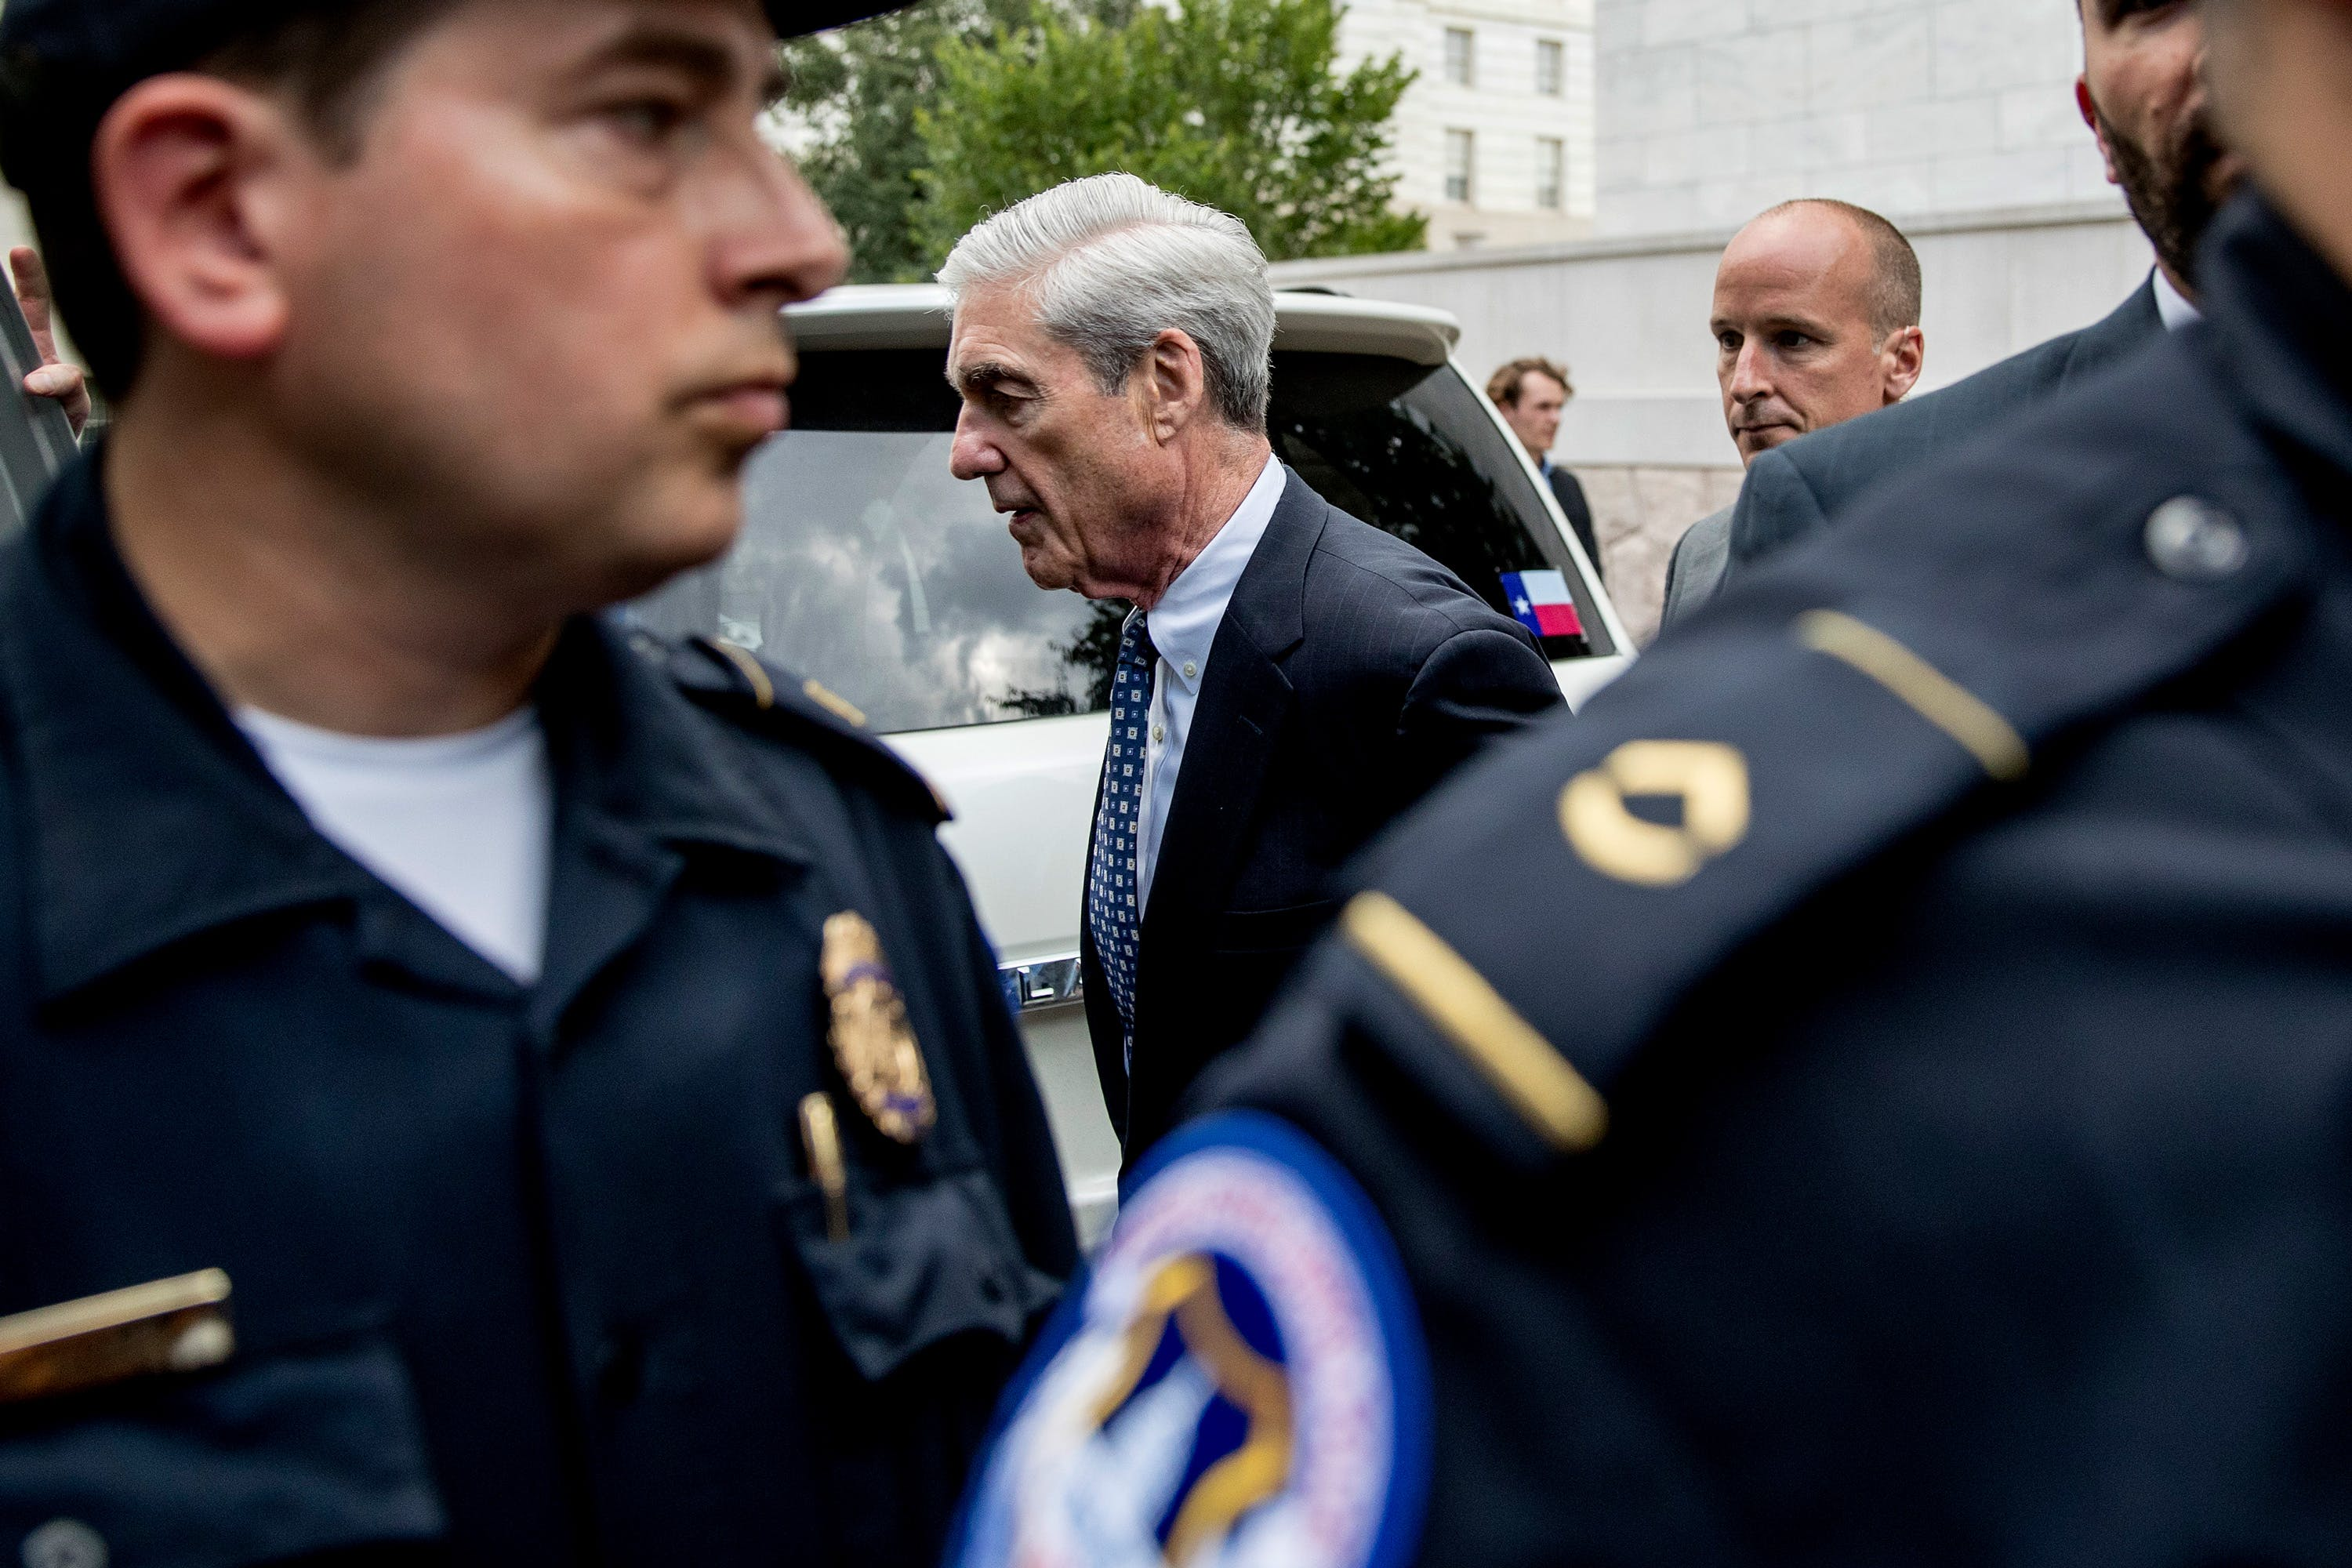 Former special counsel Robert Mueller departs after testifying before the House Intelligence Committee and the House Judiciary Committee on his report on Russian election interference, on Capitol Hill, in Washington, Wednesday, July 24, 2019. (AP Photo/Andrew Harnik)